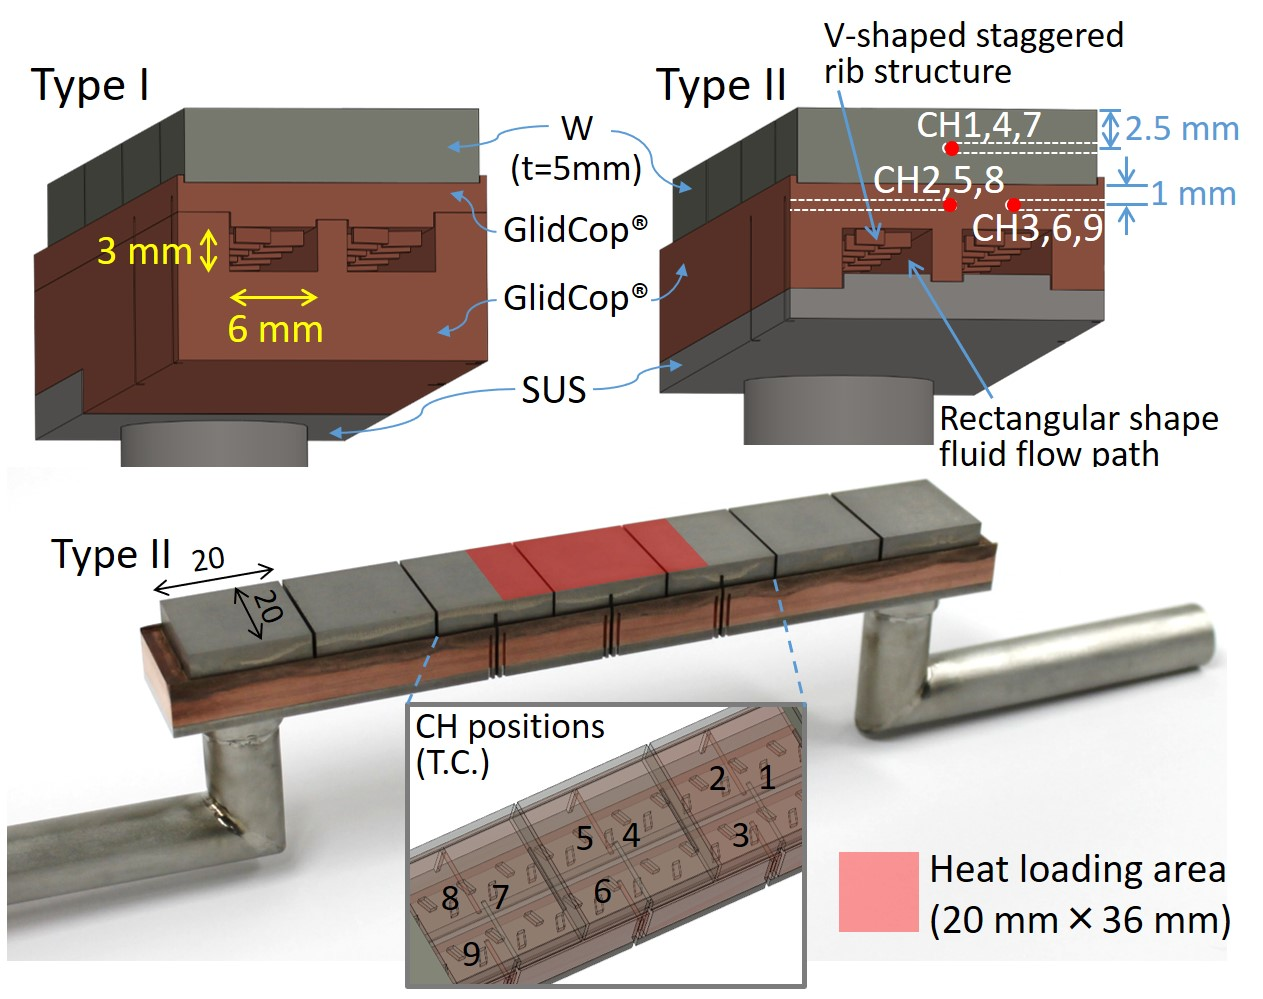 Upper series: Schematic cross-section of the AMSB divertor component of type I and II with the positions of thermocouples (T.C.). Lower series: Photograph and perspective view of type II AMSB component with the positions of T.C.